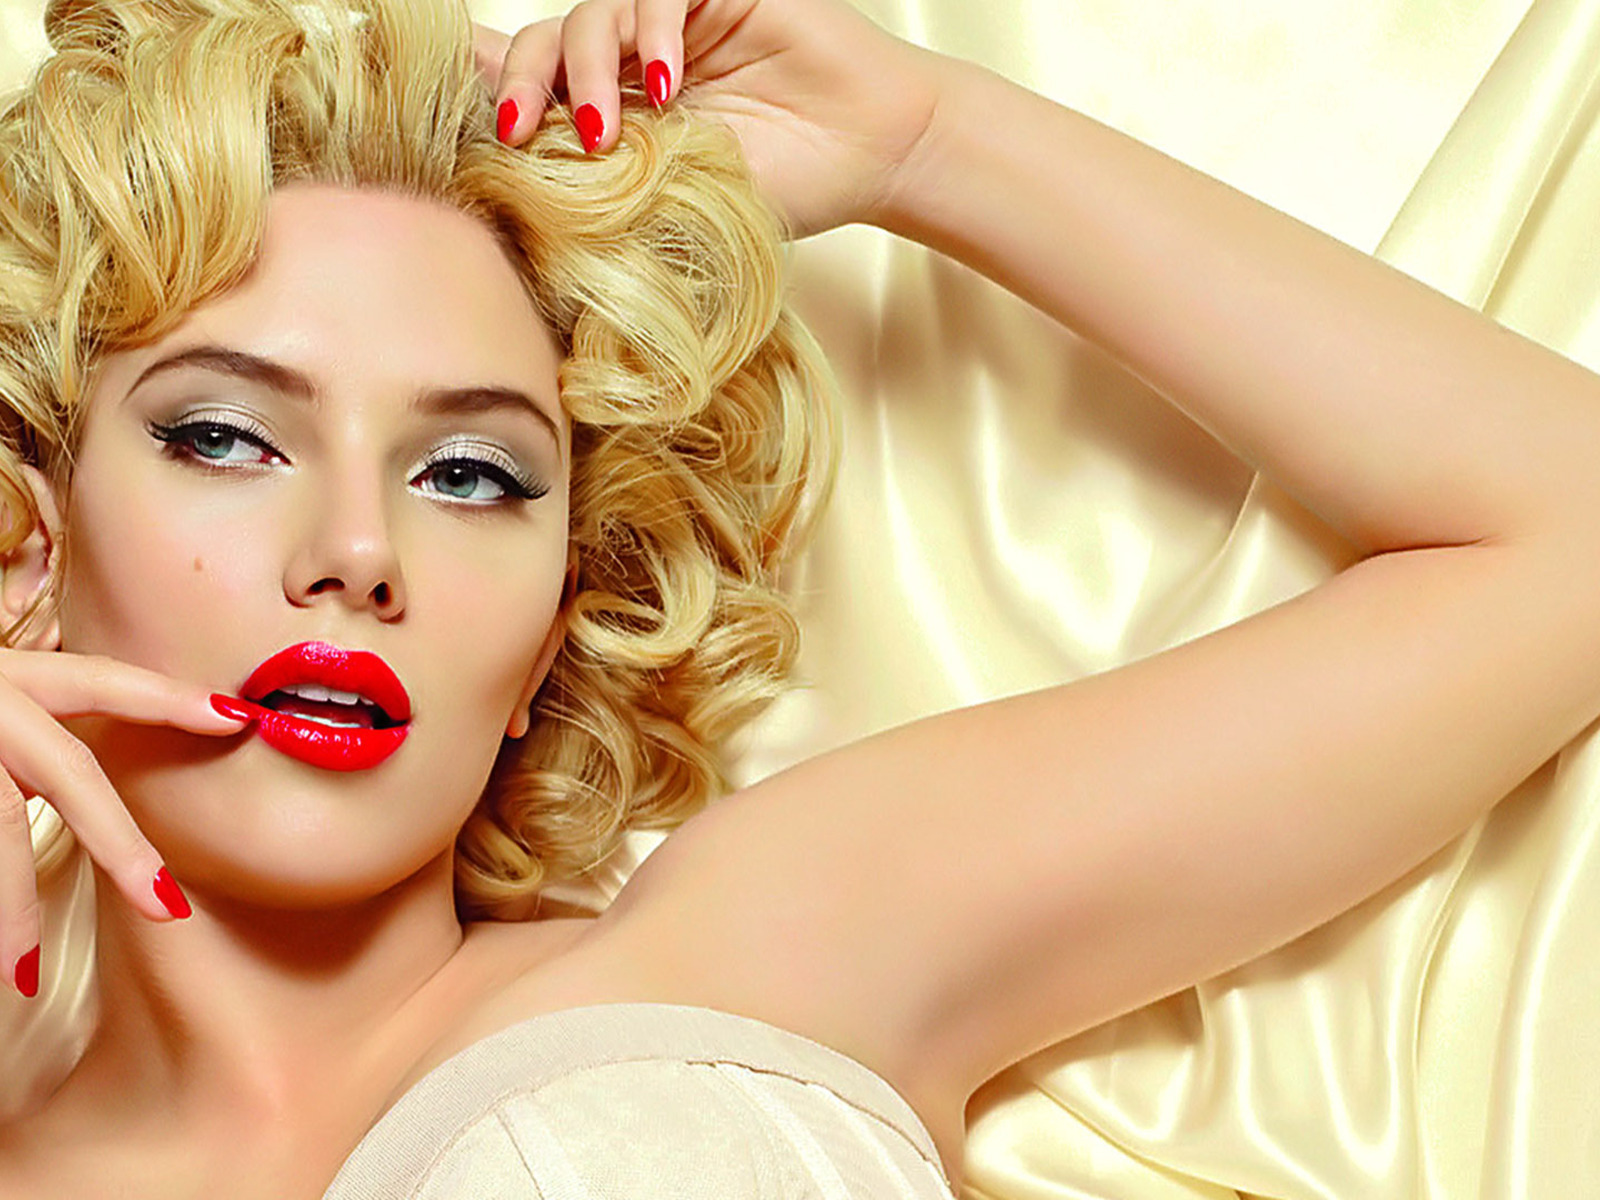 The collection actresses united states scarlett johansson 152544